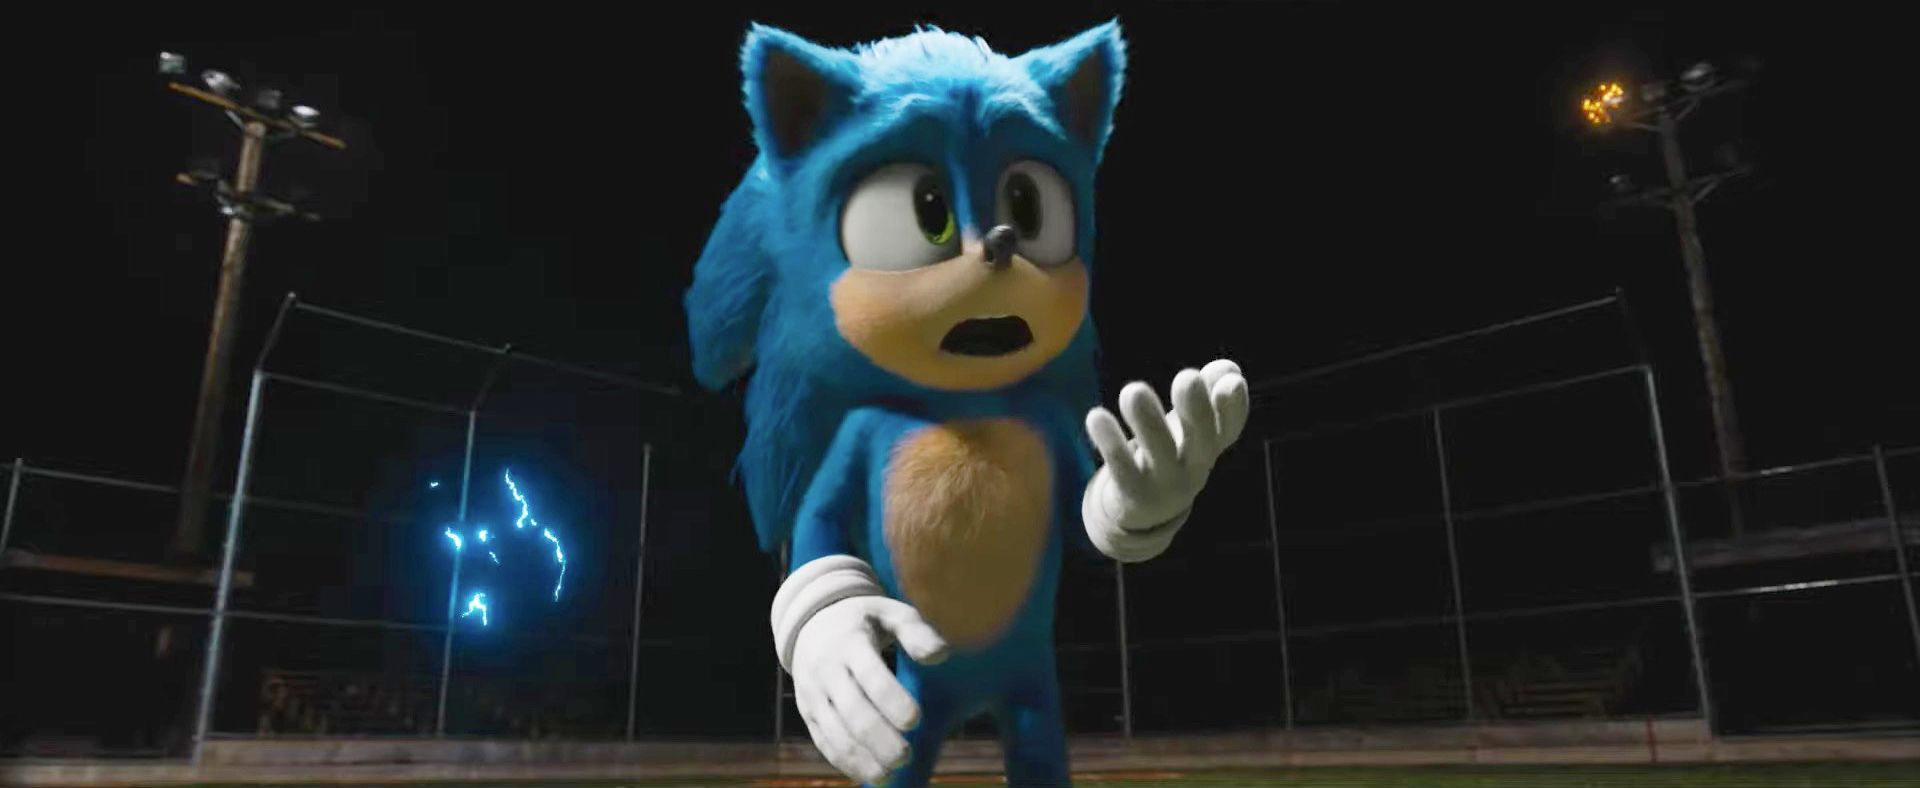 Sonic the Hedgehog trailer, release date and more